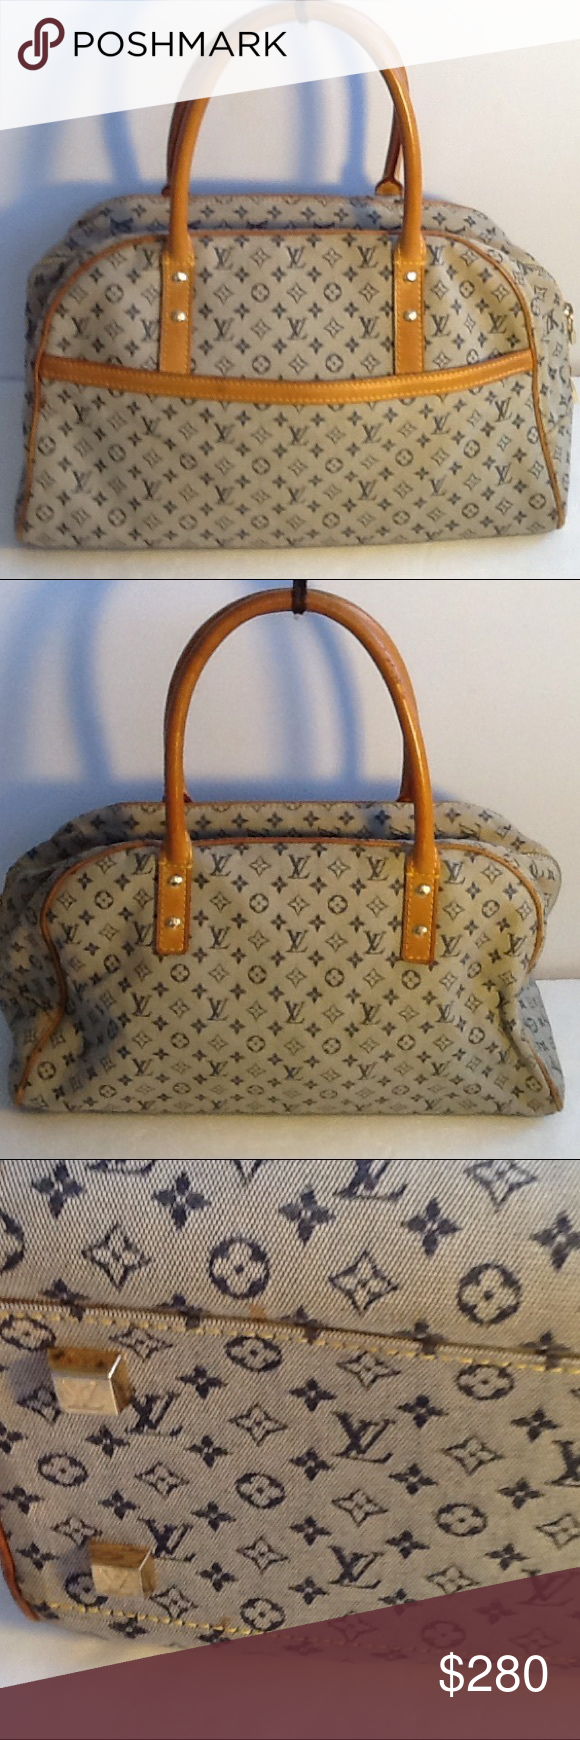 Authentic Louis Vuitton Mary Gray Blue Monogram. The canvas and inside linen had sone stains. The bag was made in Spain with a date code CA 0090. The dimension is 12, 8 and 6.5. The canvas and straps showed signs of used. Louis Vuitton Bags Satchels